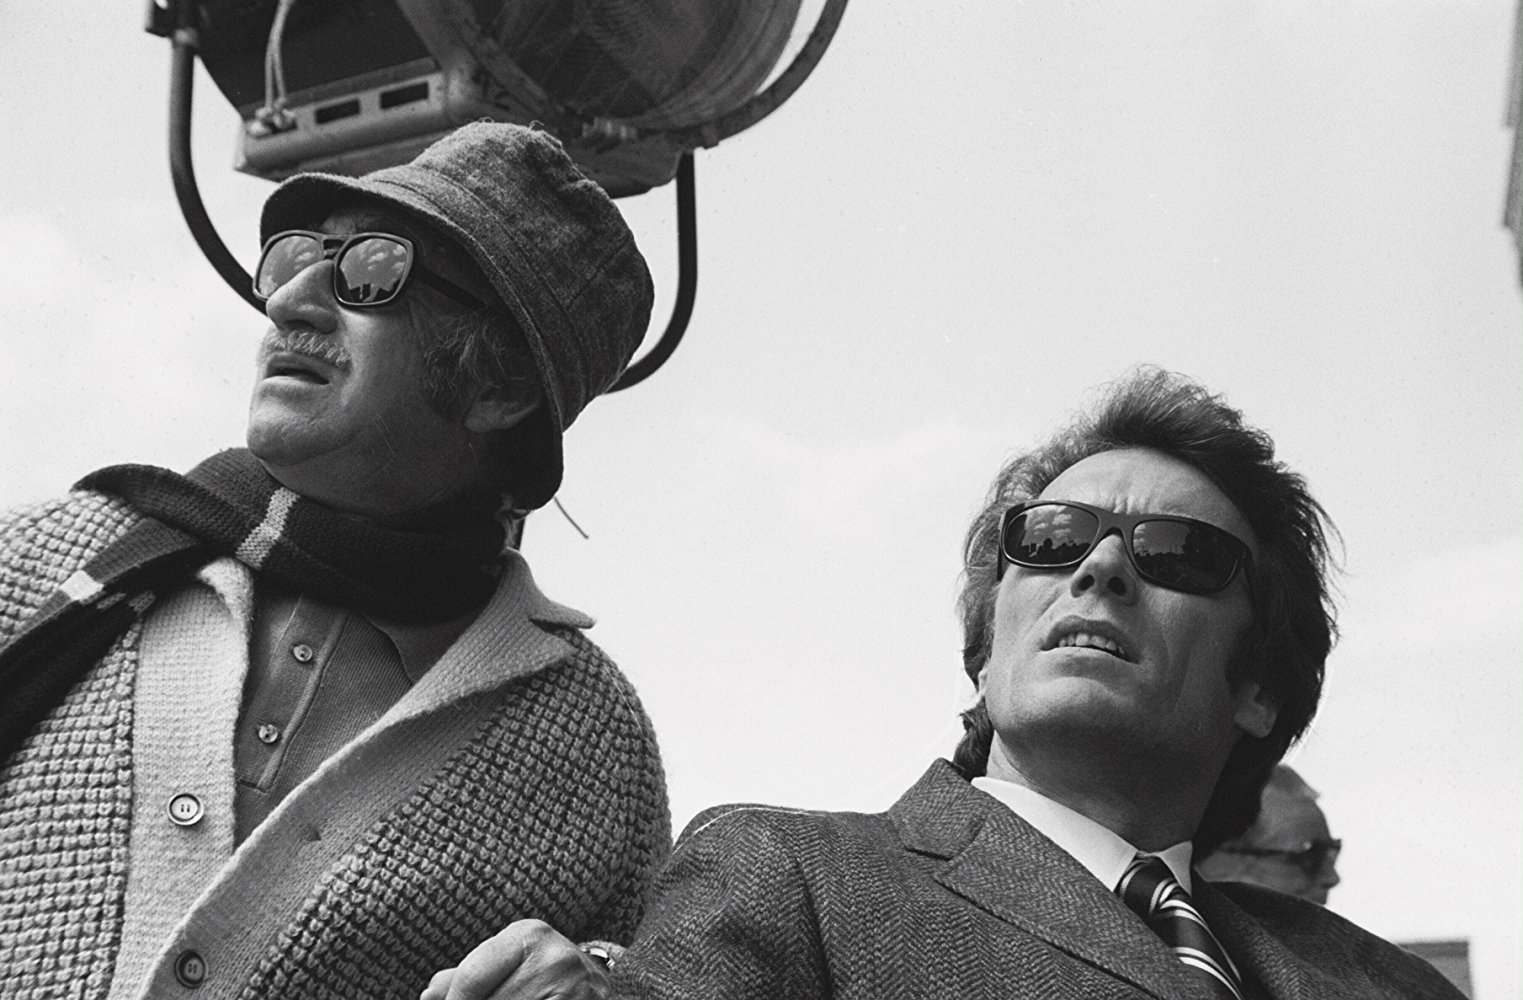 Clint Eastwood Ray Ban in Dirty Harry